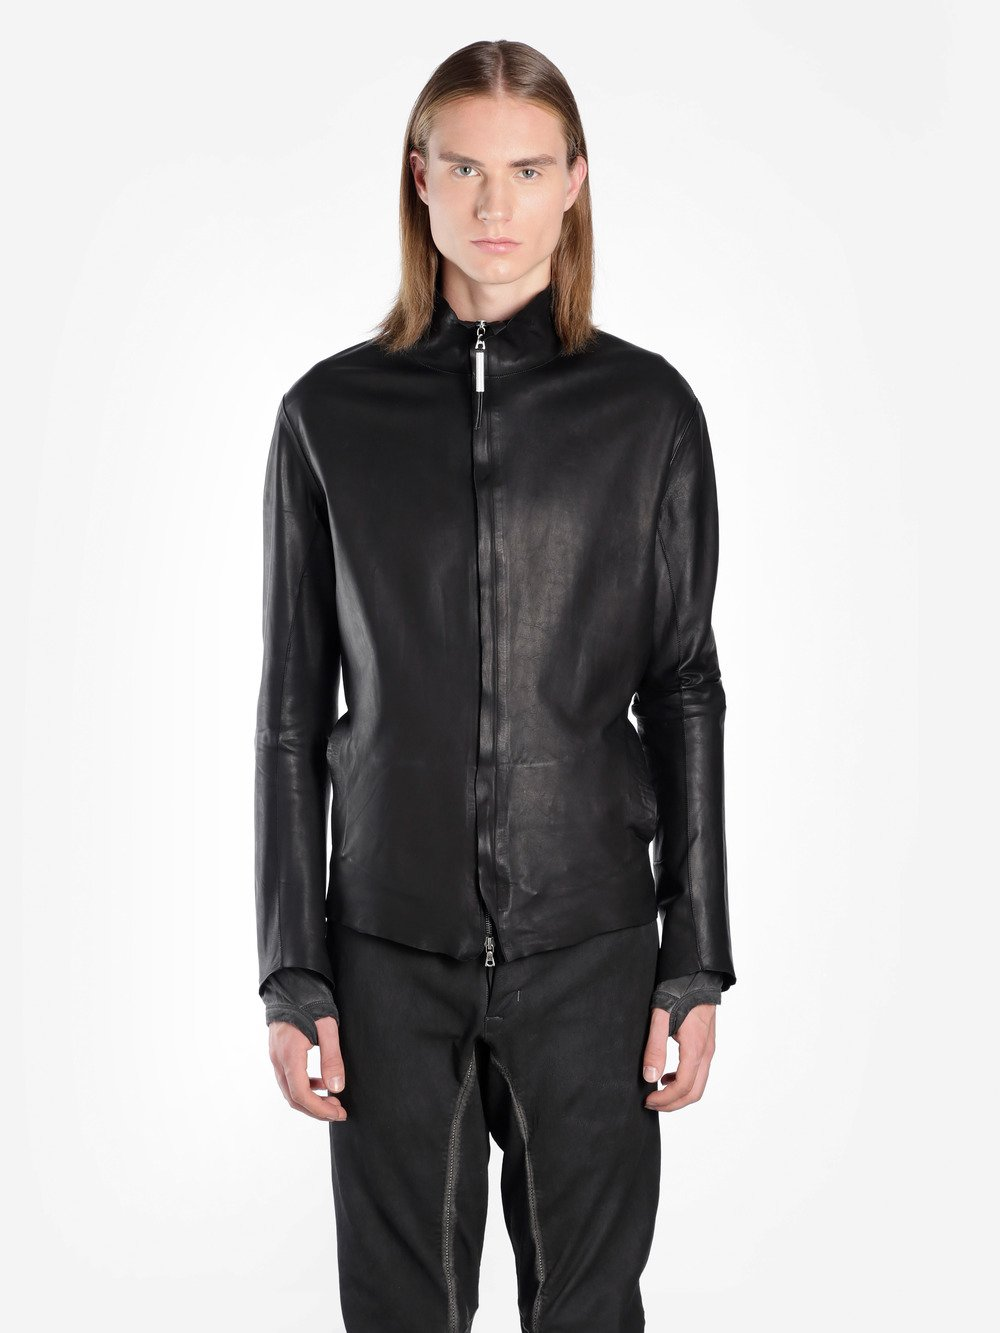 ISAAC SELLAM MEN'S BLACK LEATHER JACKET WITH BACK METAL DETAIL